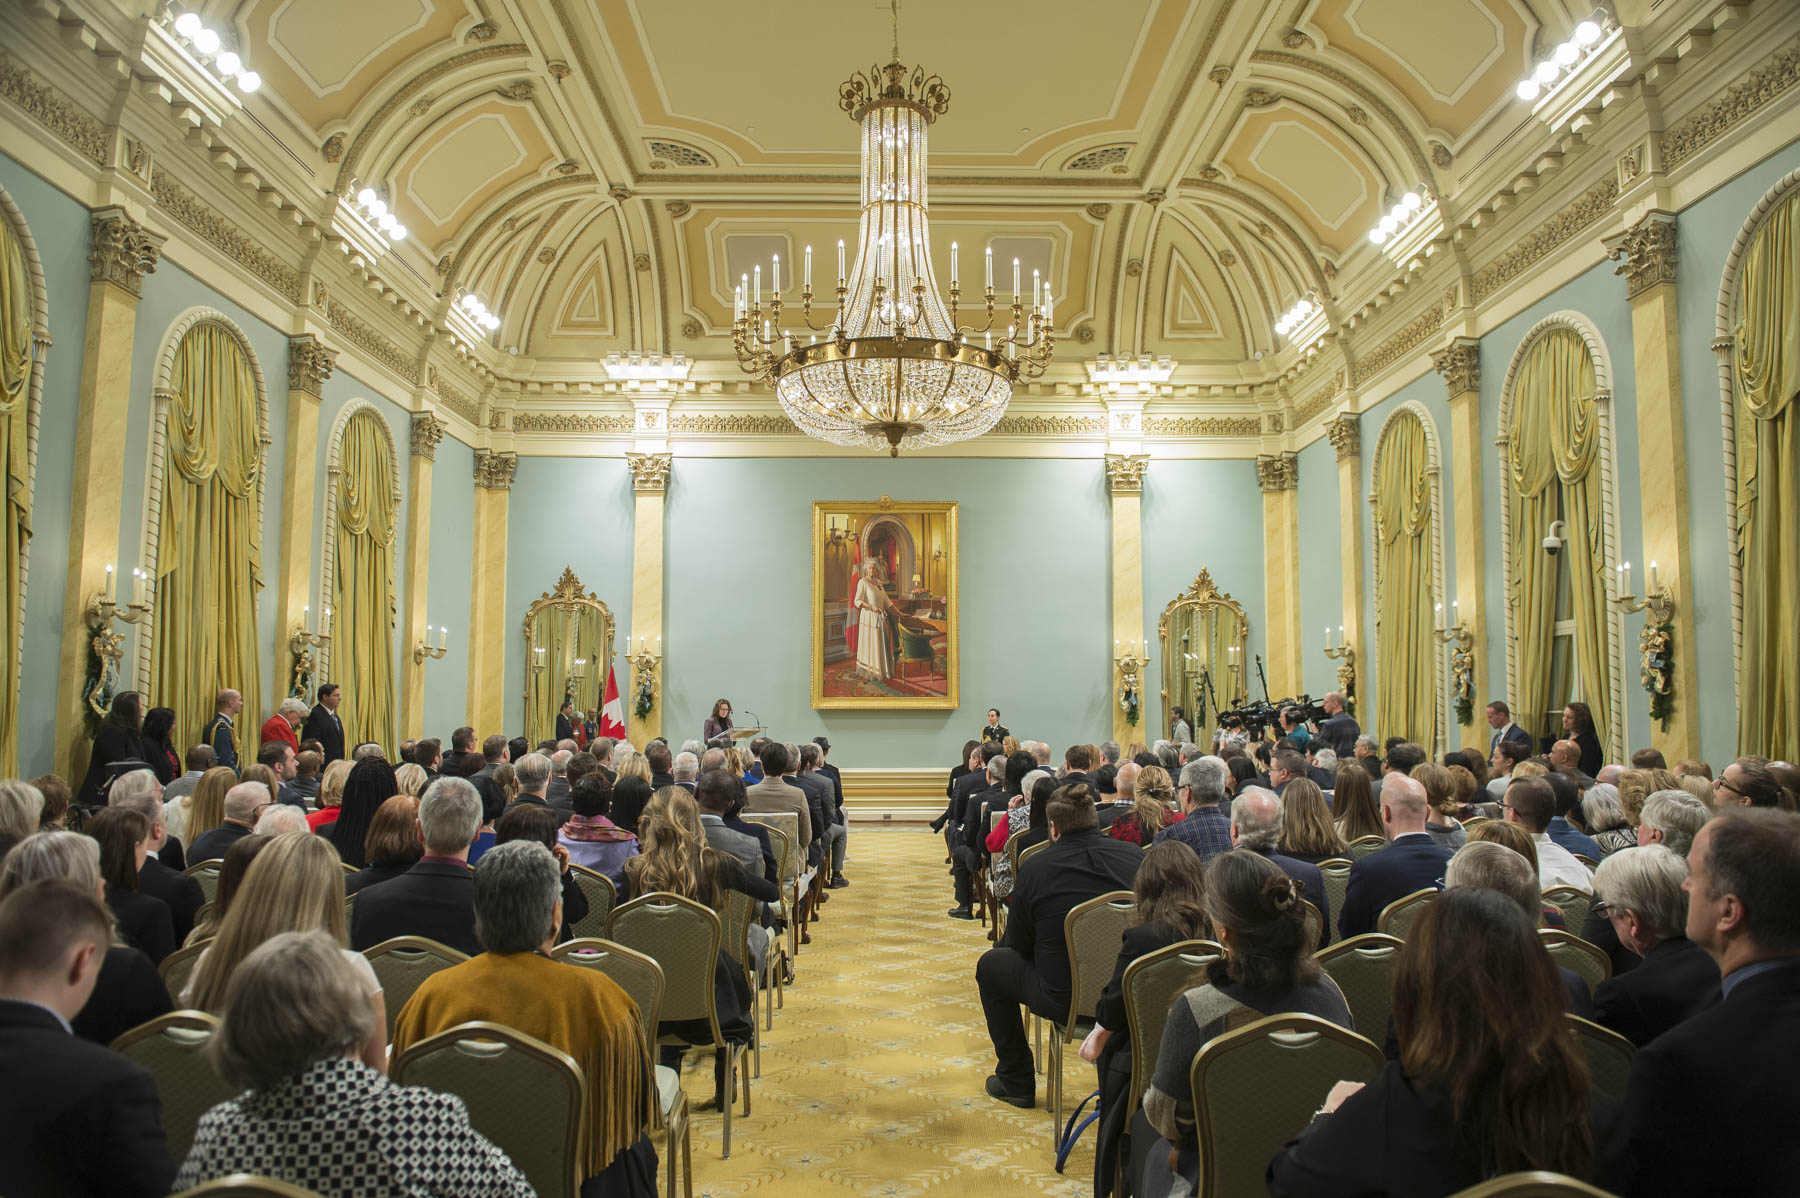 The ceremony was held in the Ballroom, at Rideau Hall.